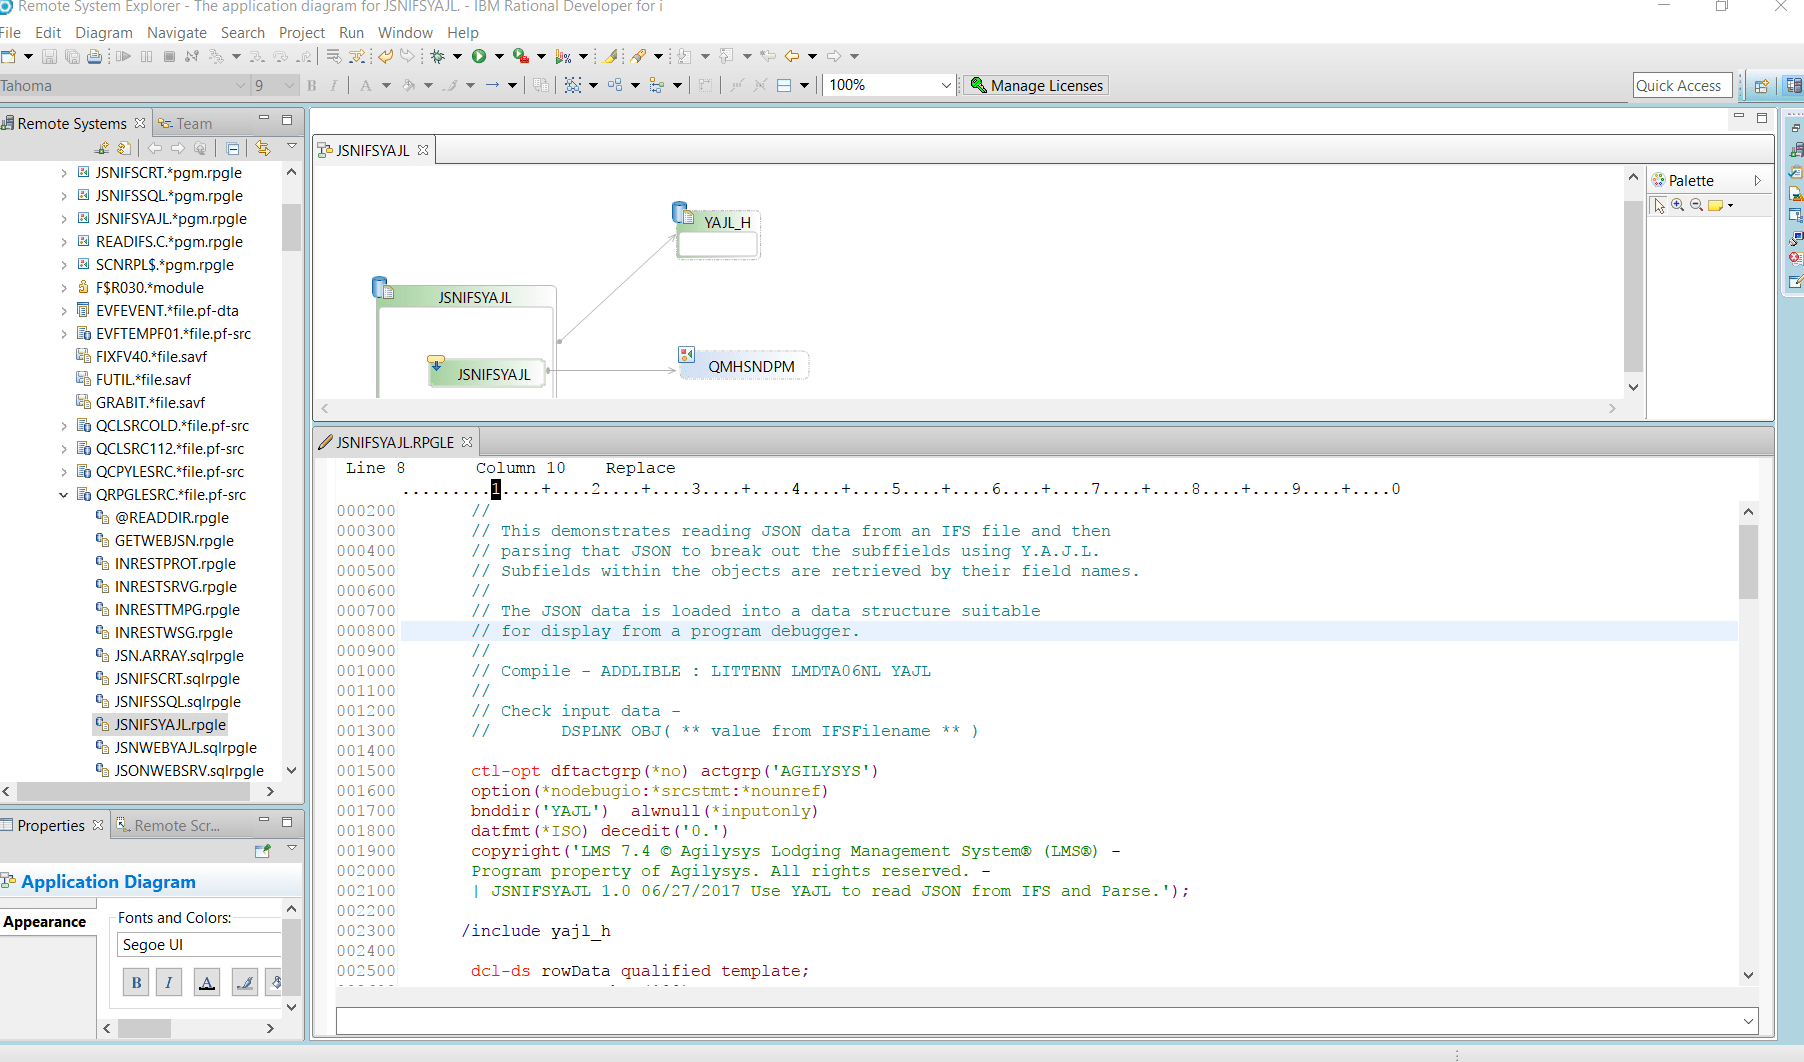 Latest RDi Fixpack for IBM Rational Developer (RPG Code Editor) is